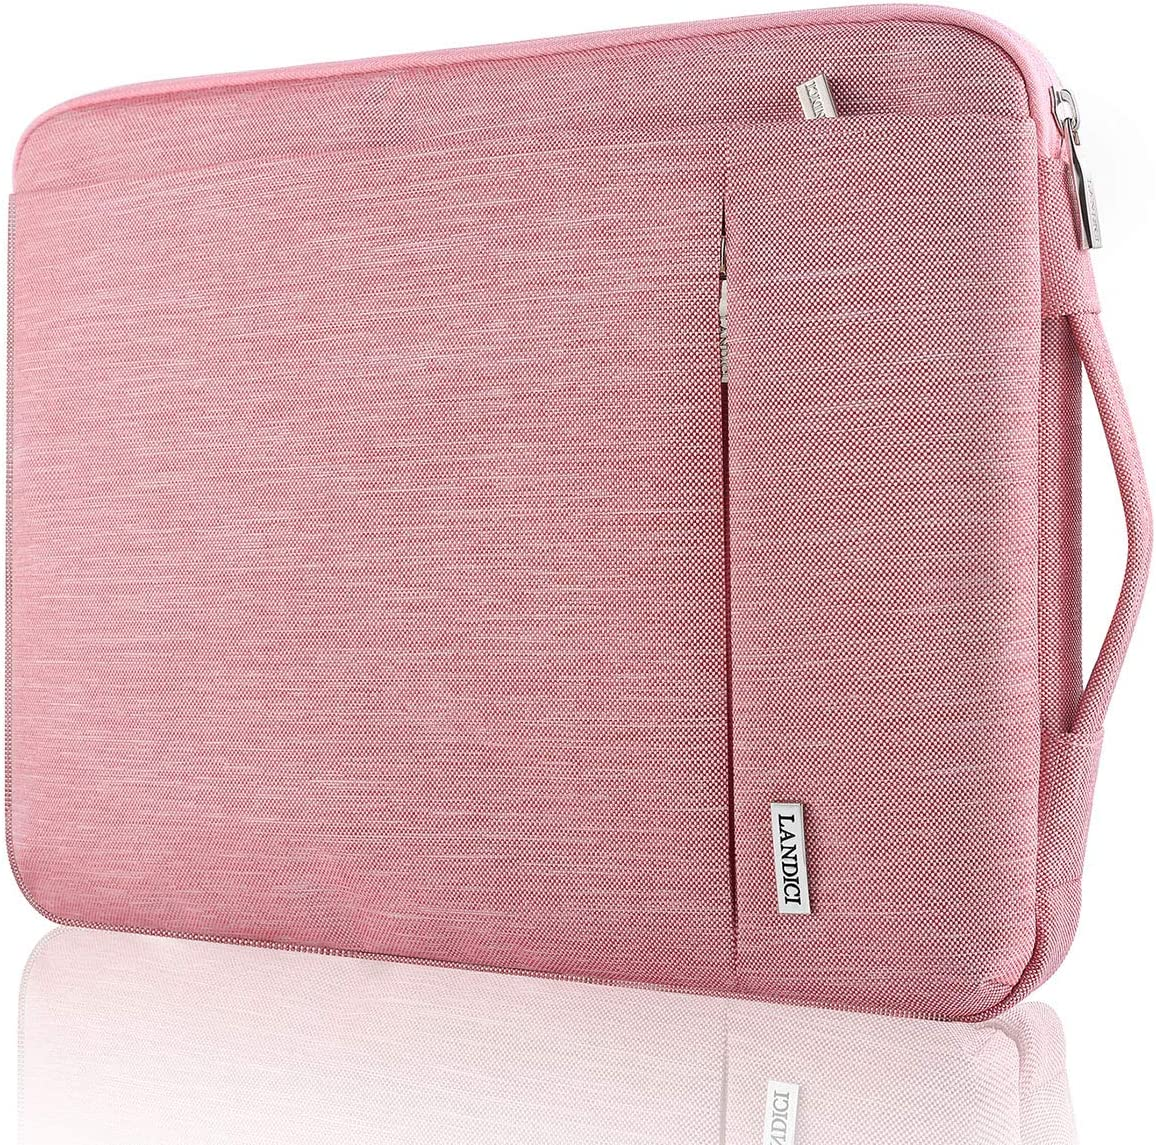 """Landici 360 Protective Laptop Sleeve 11.6 Inch,Waterproof Notebook Tablet Case Bag Compatible for IPad Pro 12.9 2020,12.3"""",Surface Pro 7/6/5,MacBook Air 11,New MacBook 12"""",HP Acer Chromebook-Pink"""